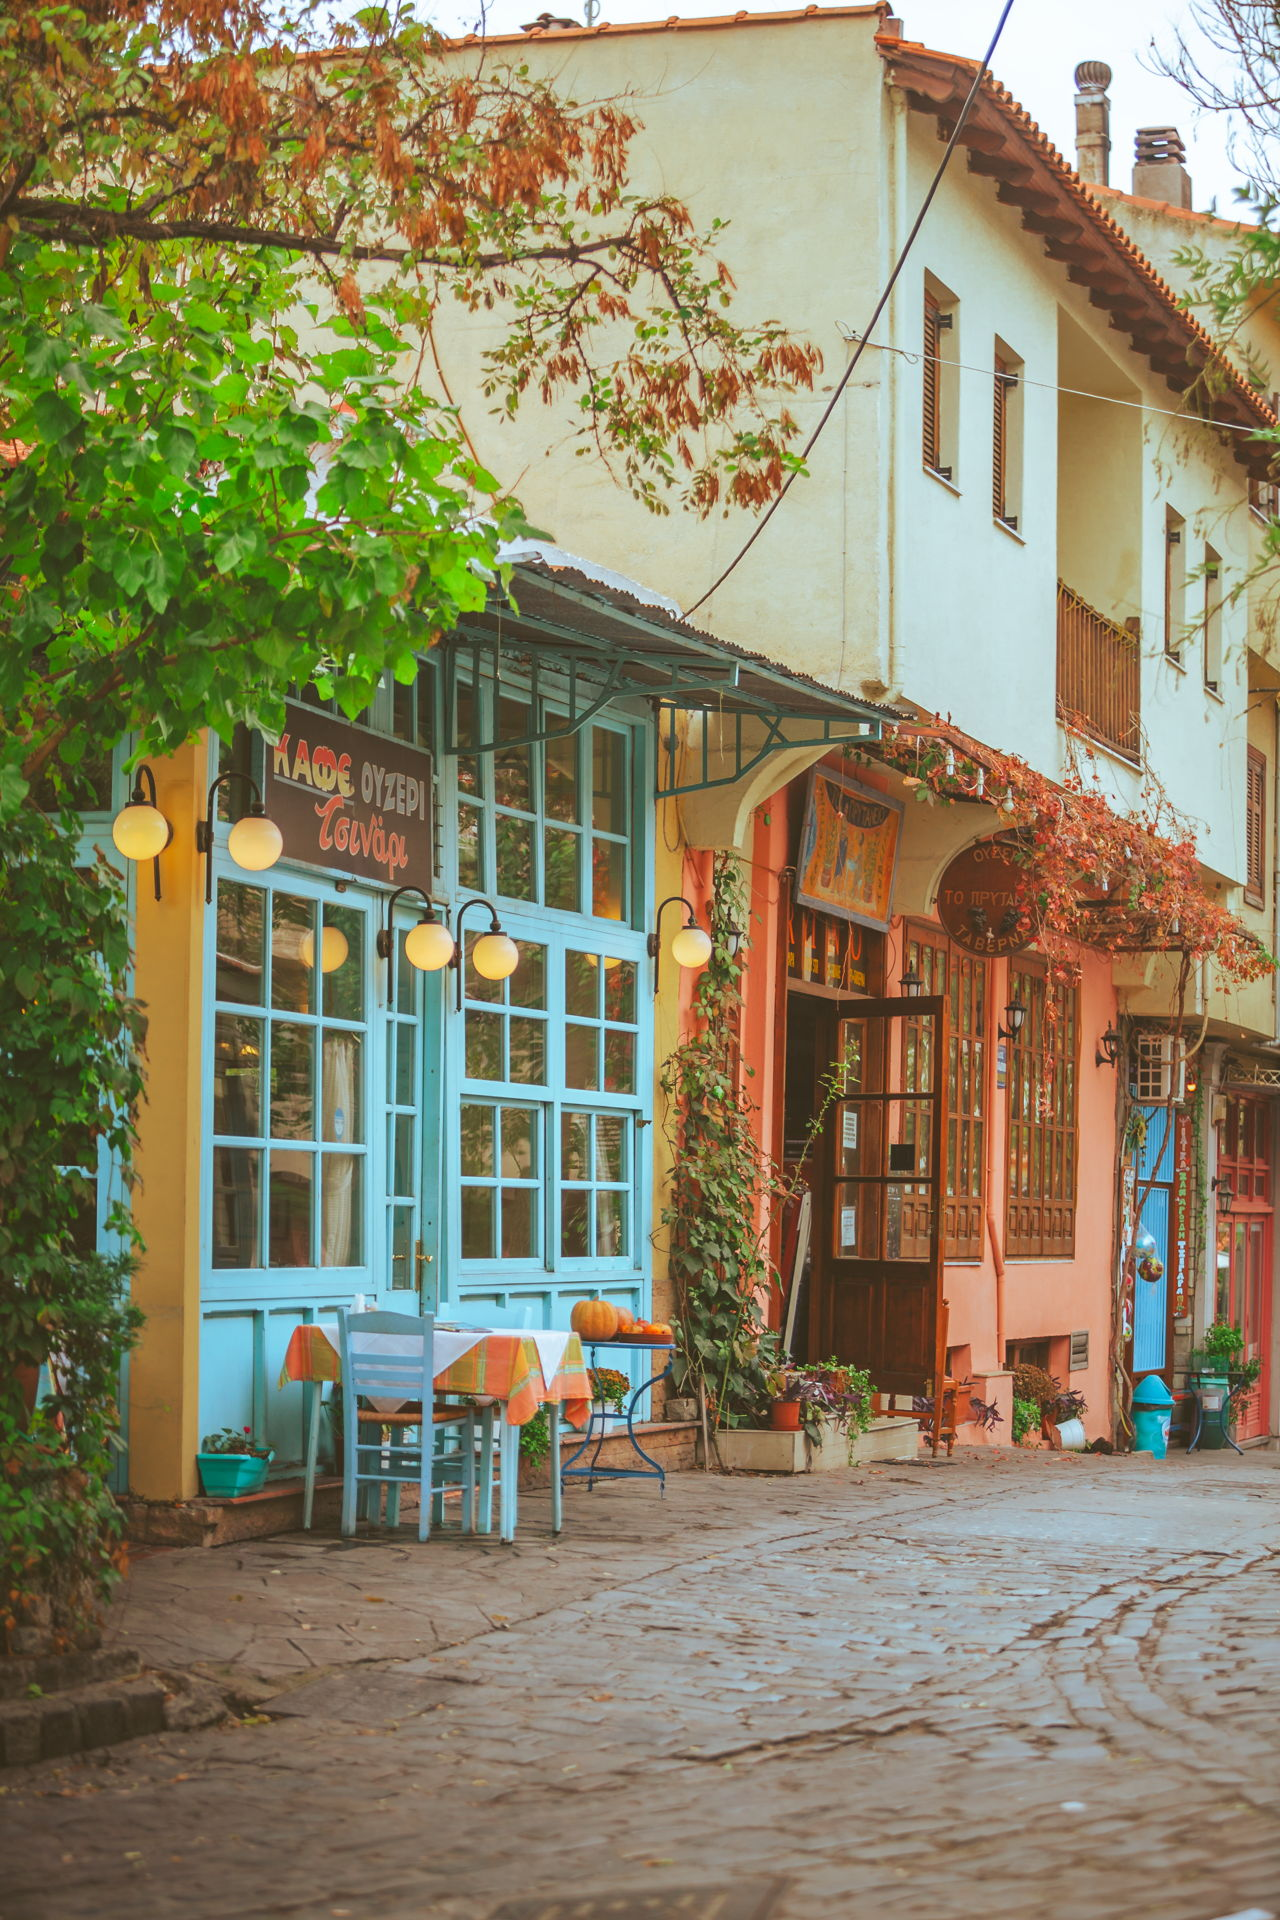 In Upper Town you will find plenty traditional tavernas